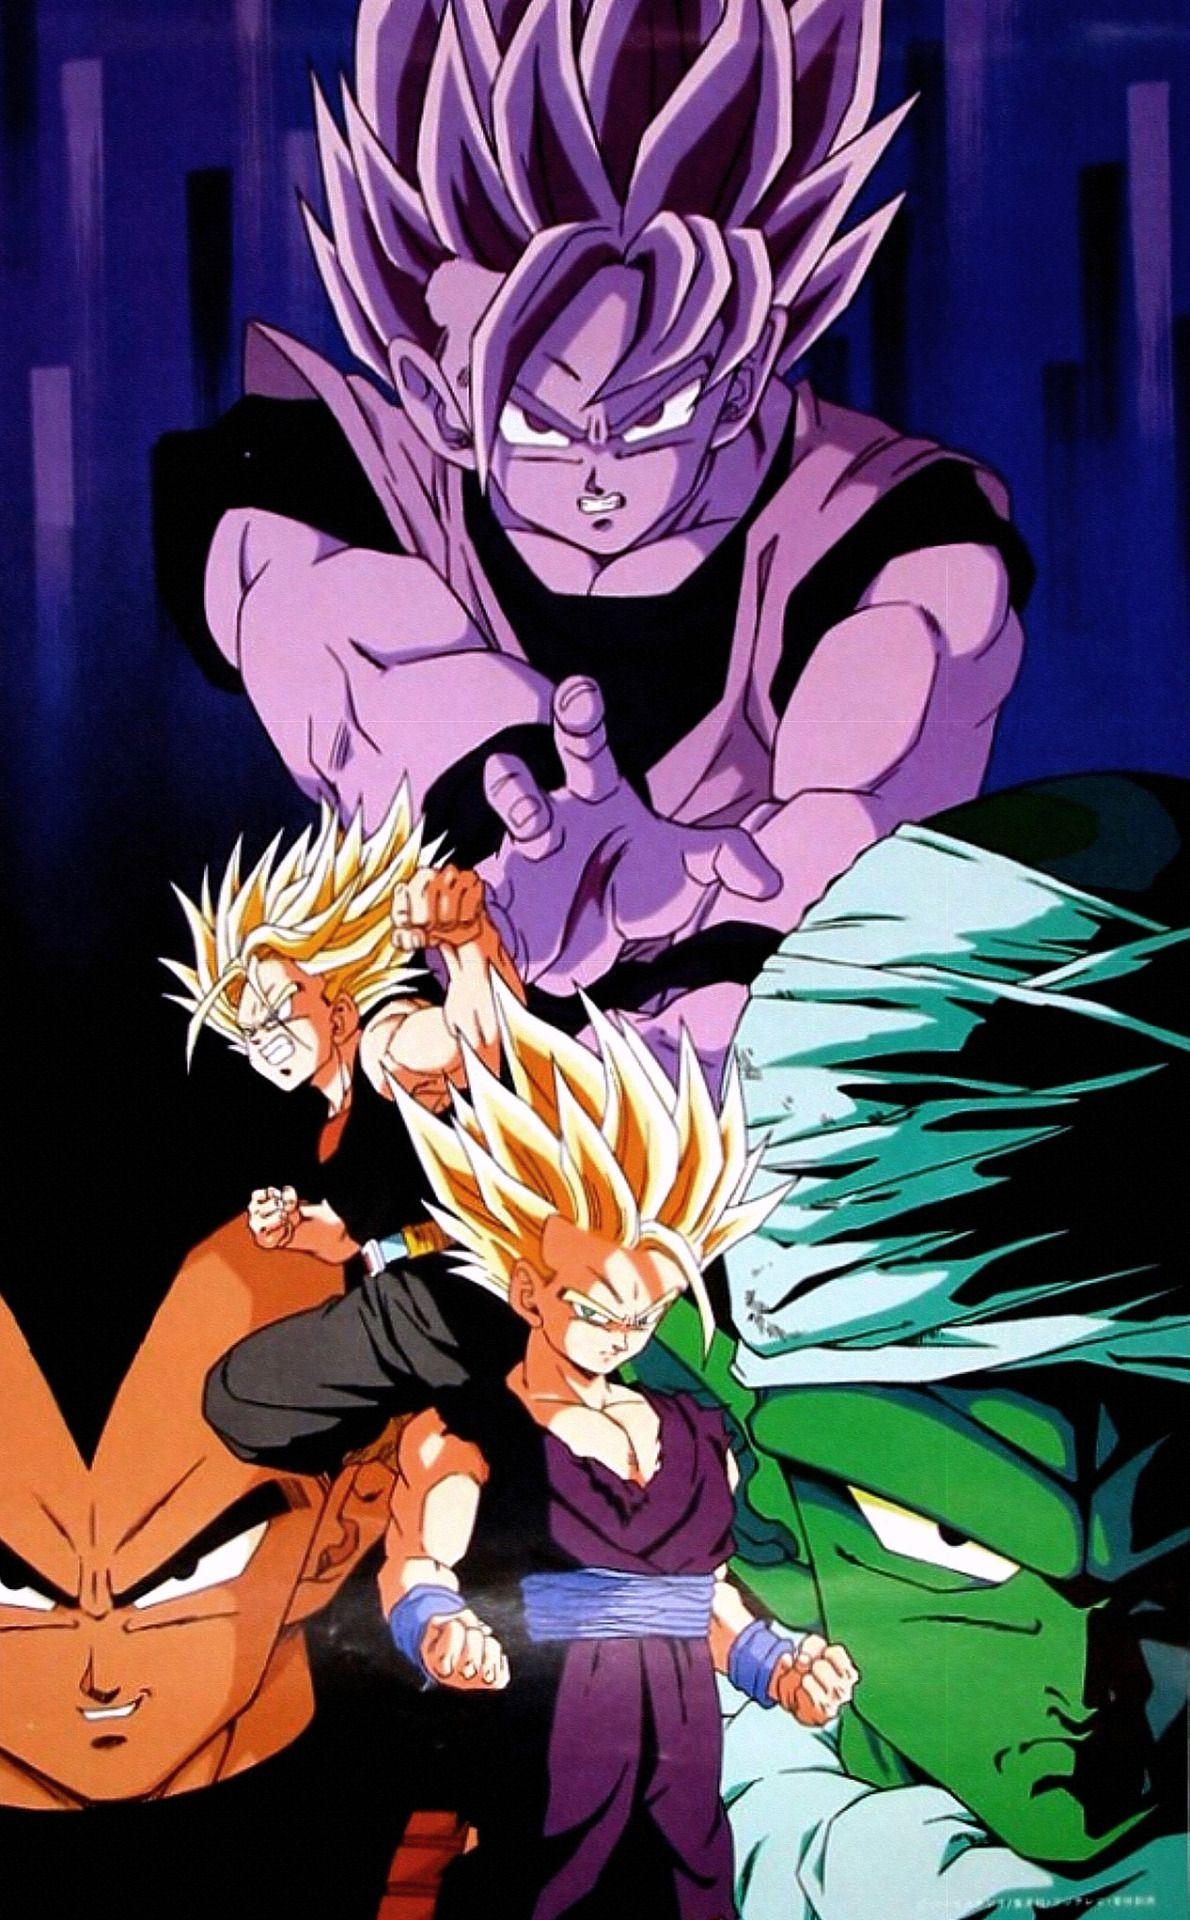 From 94 Calendar Dragon Ball Z Found Here Site I Work With My Studio Photo To Crop And Improve Color Father Owns Several Vintage DBZ